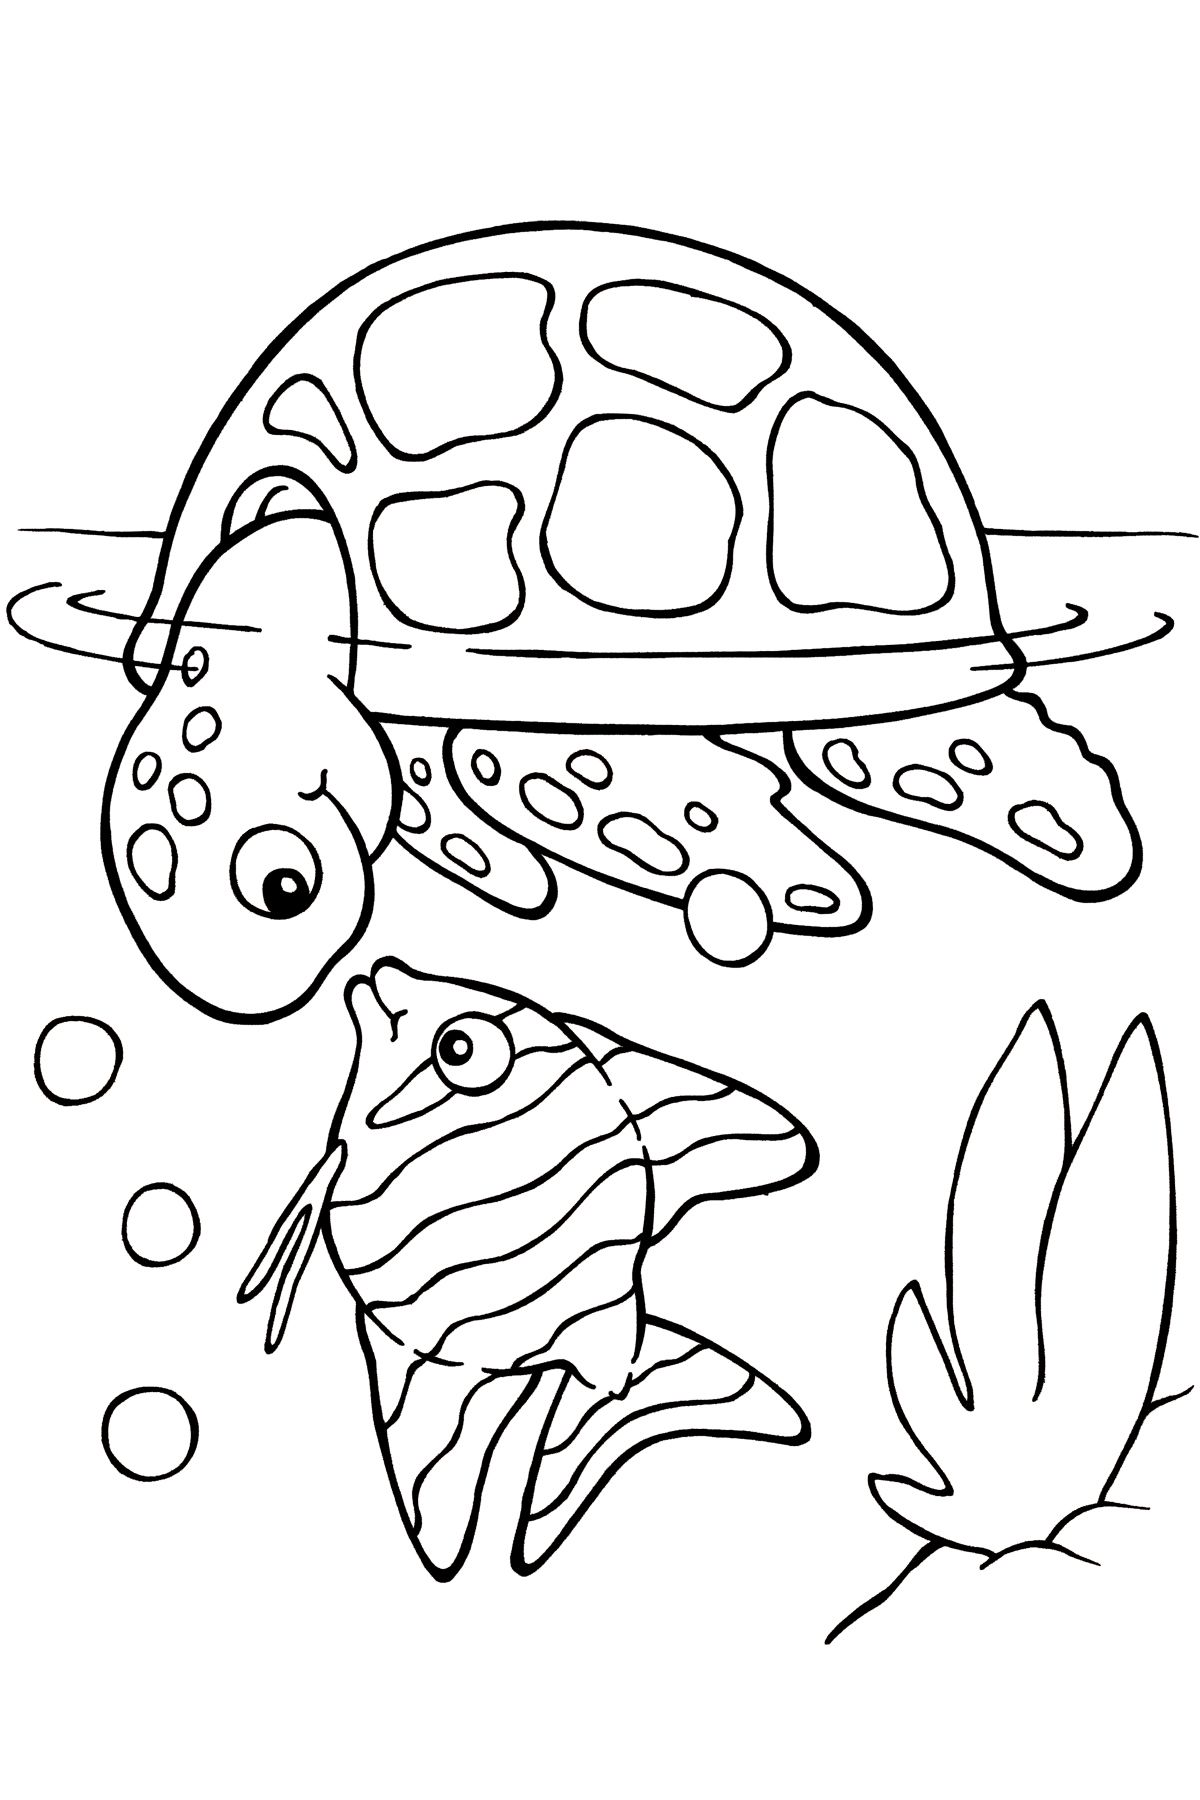 mommy turtle coloring pages - photo#26